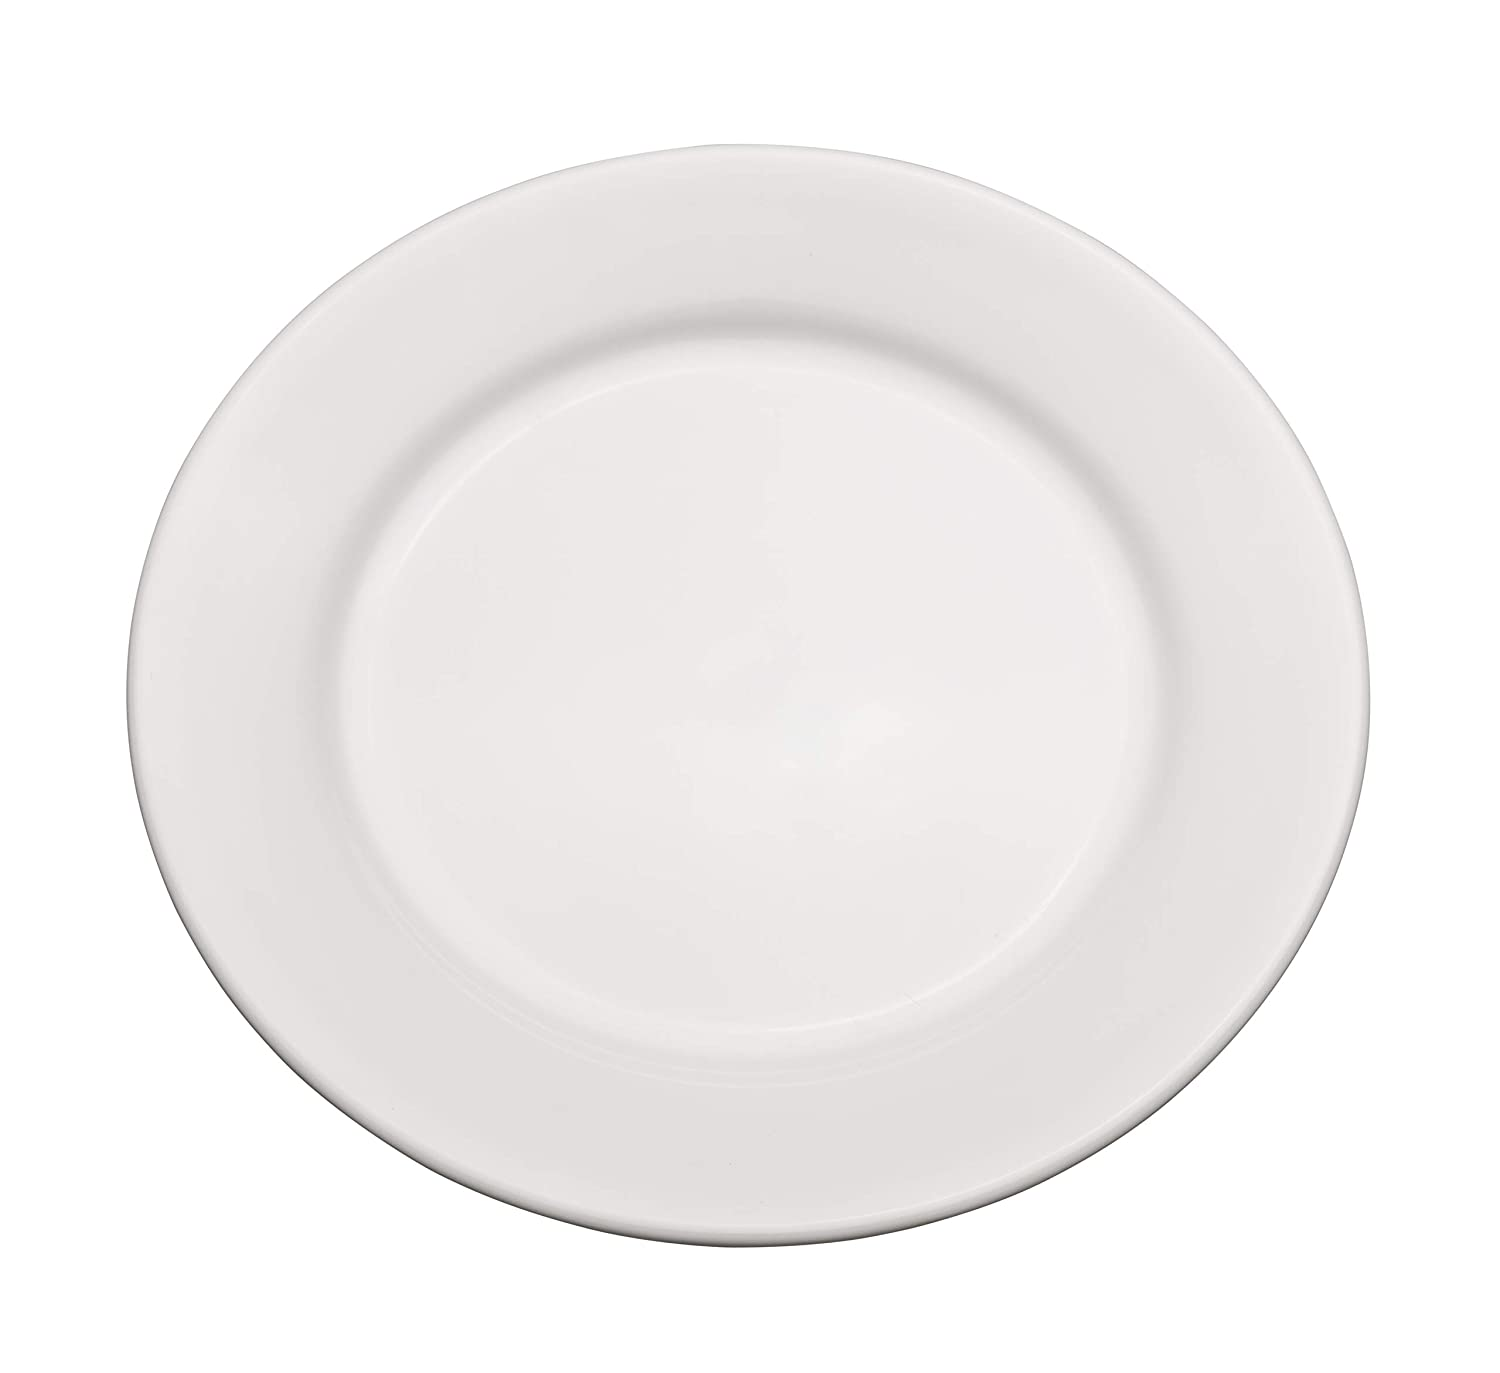 """Chef Expressions 7-1/2"""" Round Salad Plate, Restaurant Quality, Vitrified Bright White Porcelain, Wide Rim, Rolled Edge (Case of 12)"""